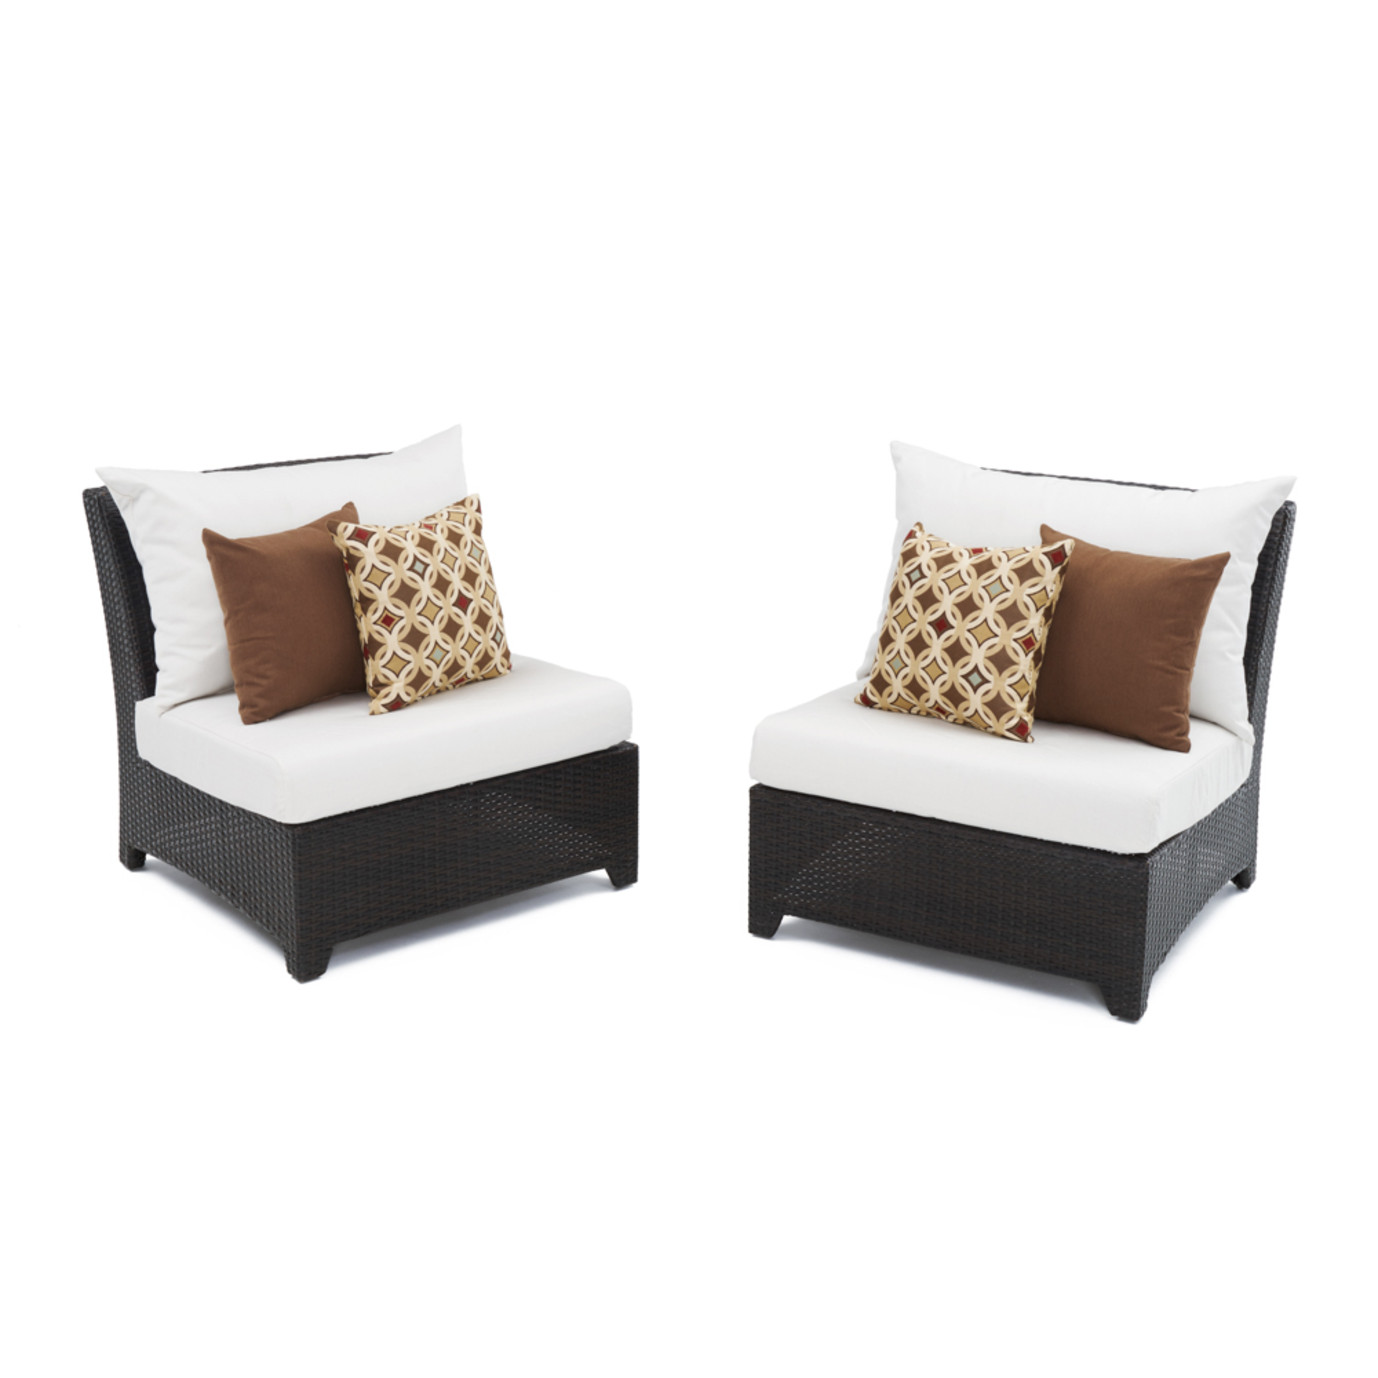 Deco™ Armless Chairs - Moroccan Cream